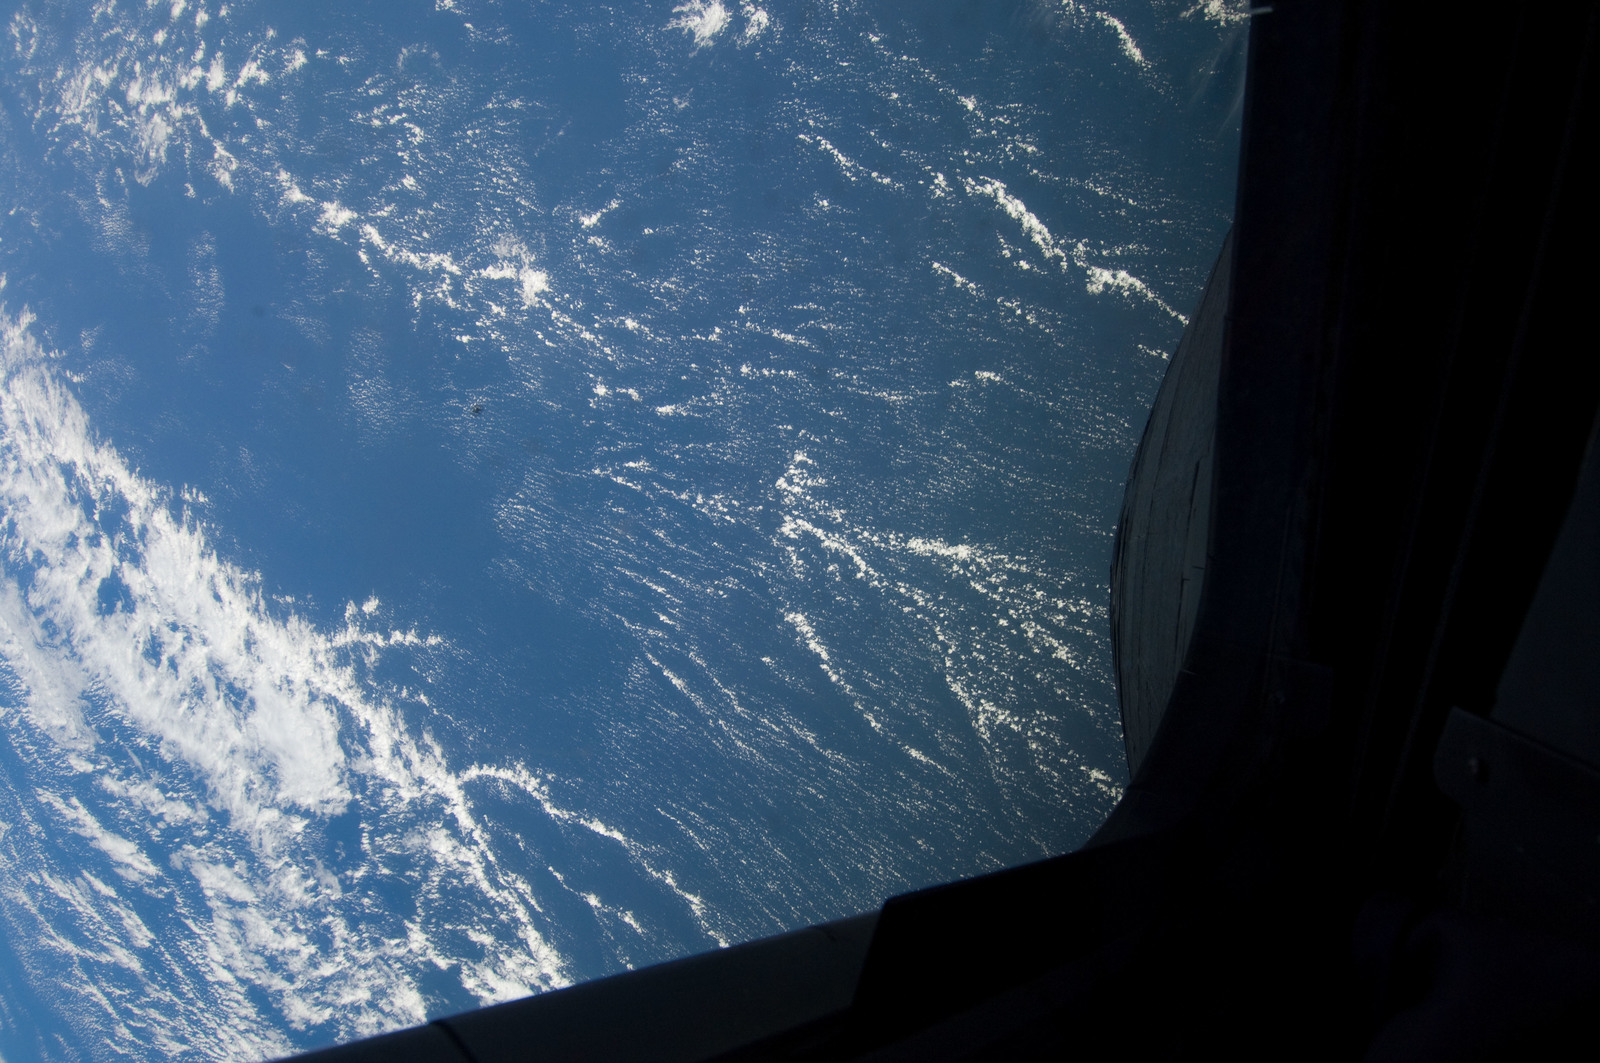 s133E006934 - STS-133 - Earth Observation taken by the STS-133 crew